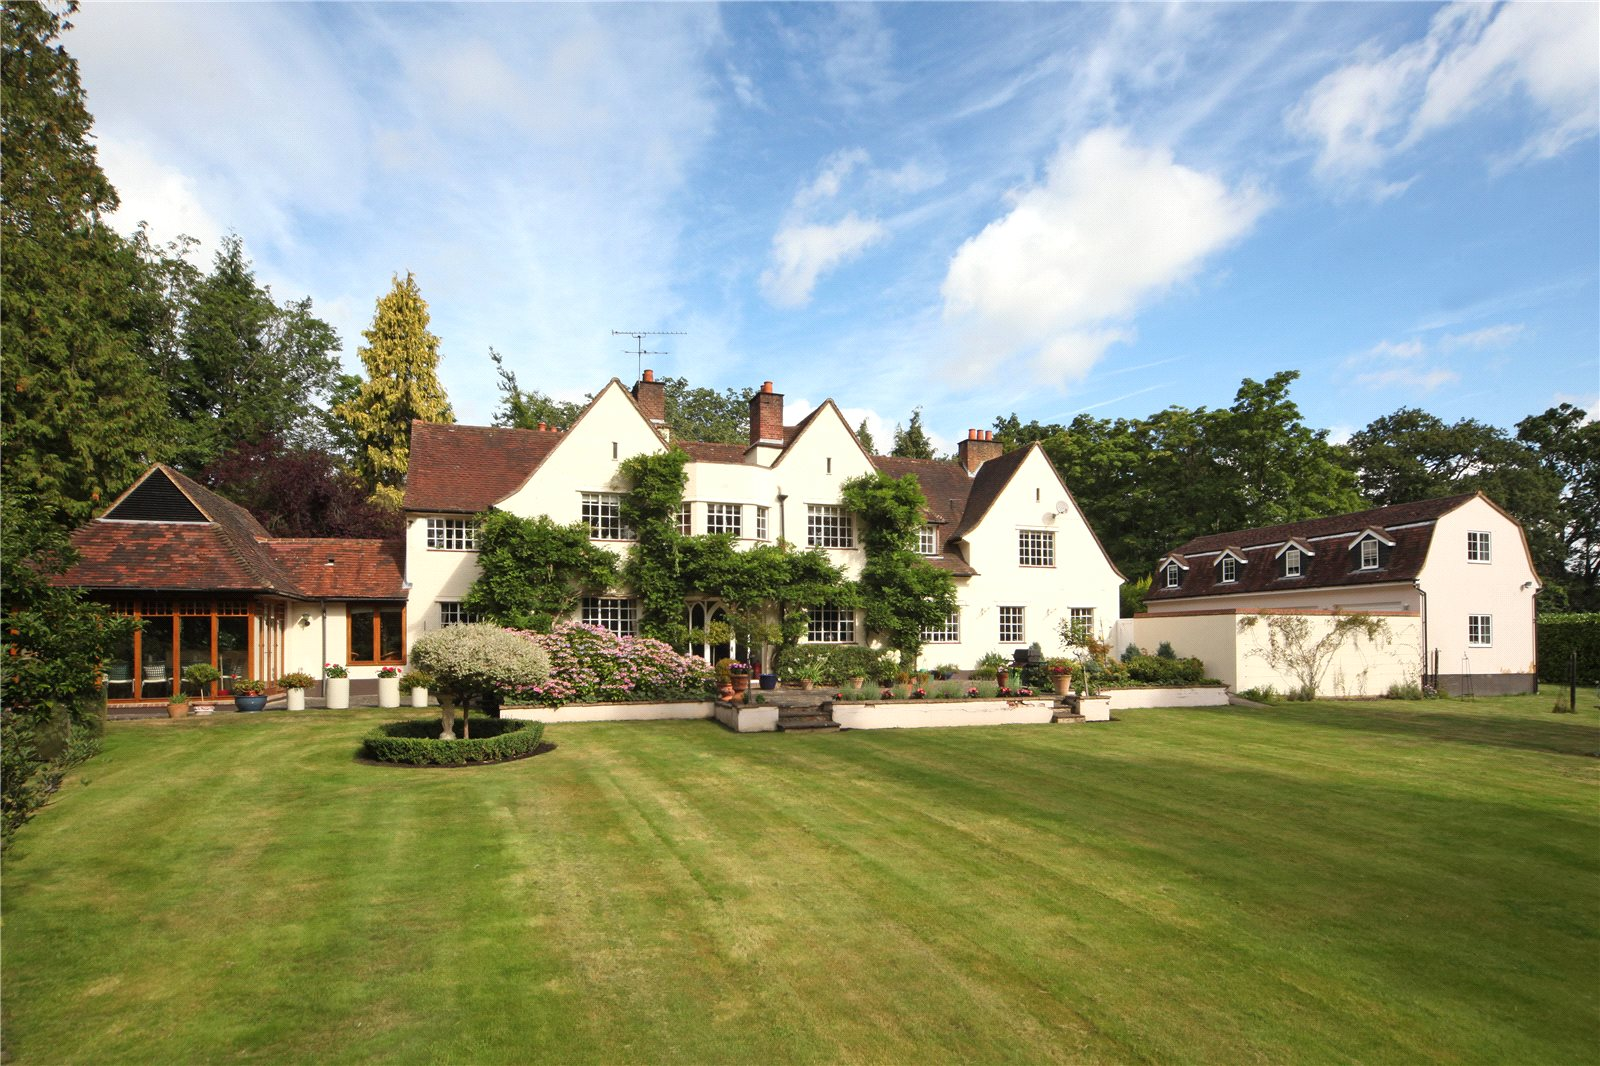 Maison unifamiliale pour l Vente à London Road, Windlesham, Surrey, GU20 Windlesham, Angleterre